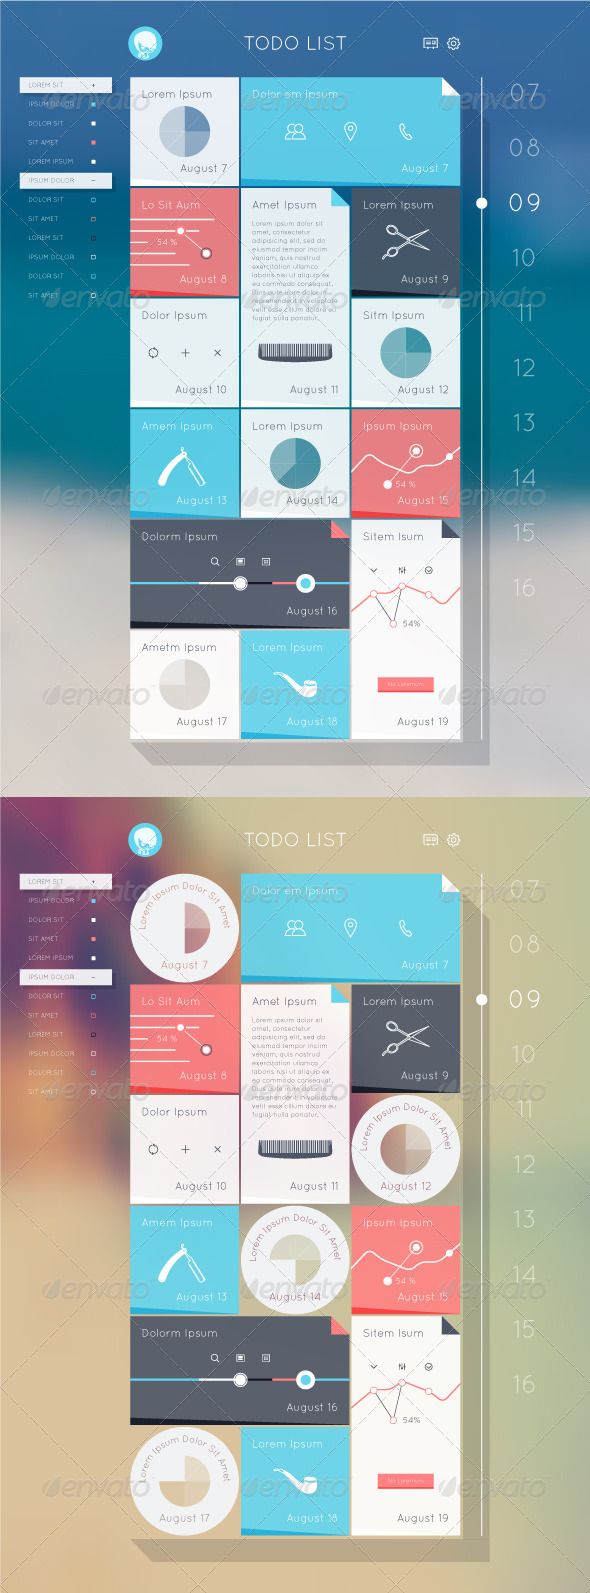 GraphicRiver ToDo List 8275750